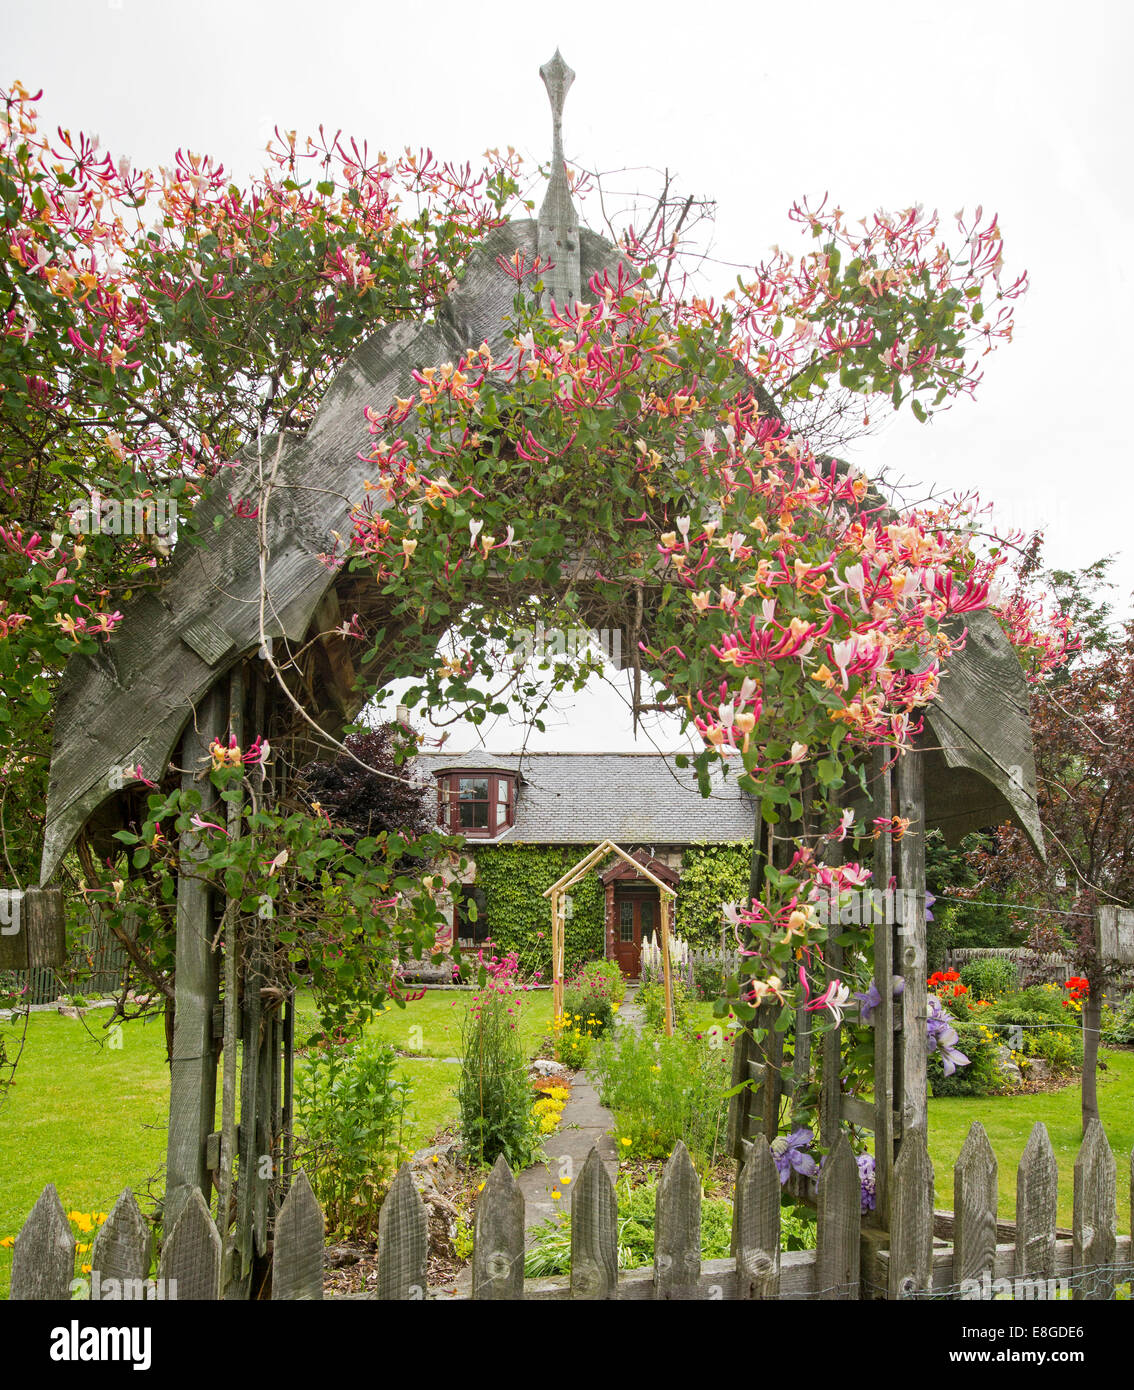 Honeysuckle, with colourful red and yellow flowers growing over wooden archway at entrance to garden of stone cottage - Stock Image